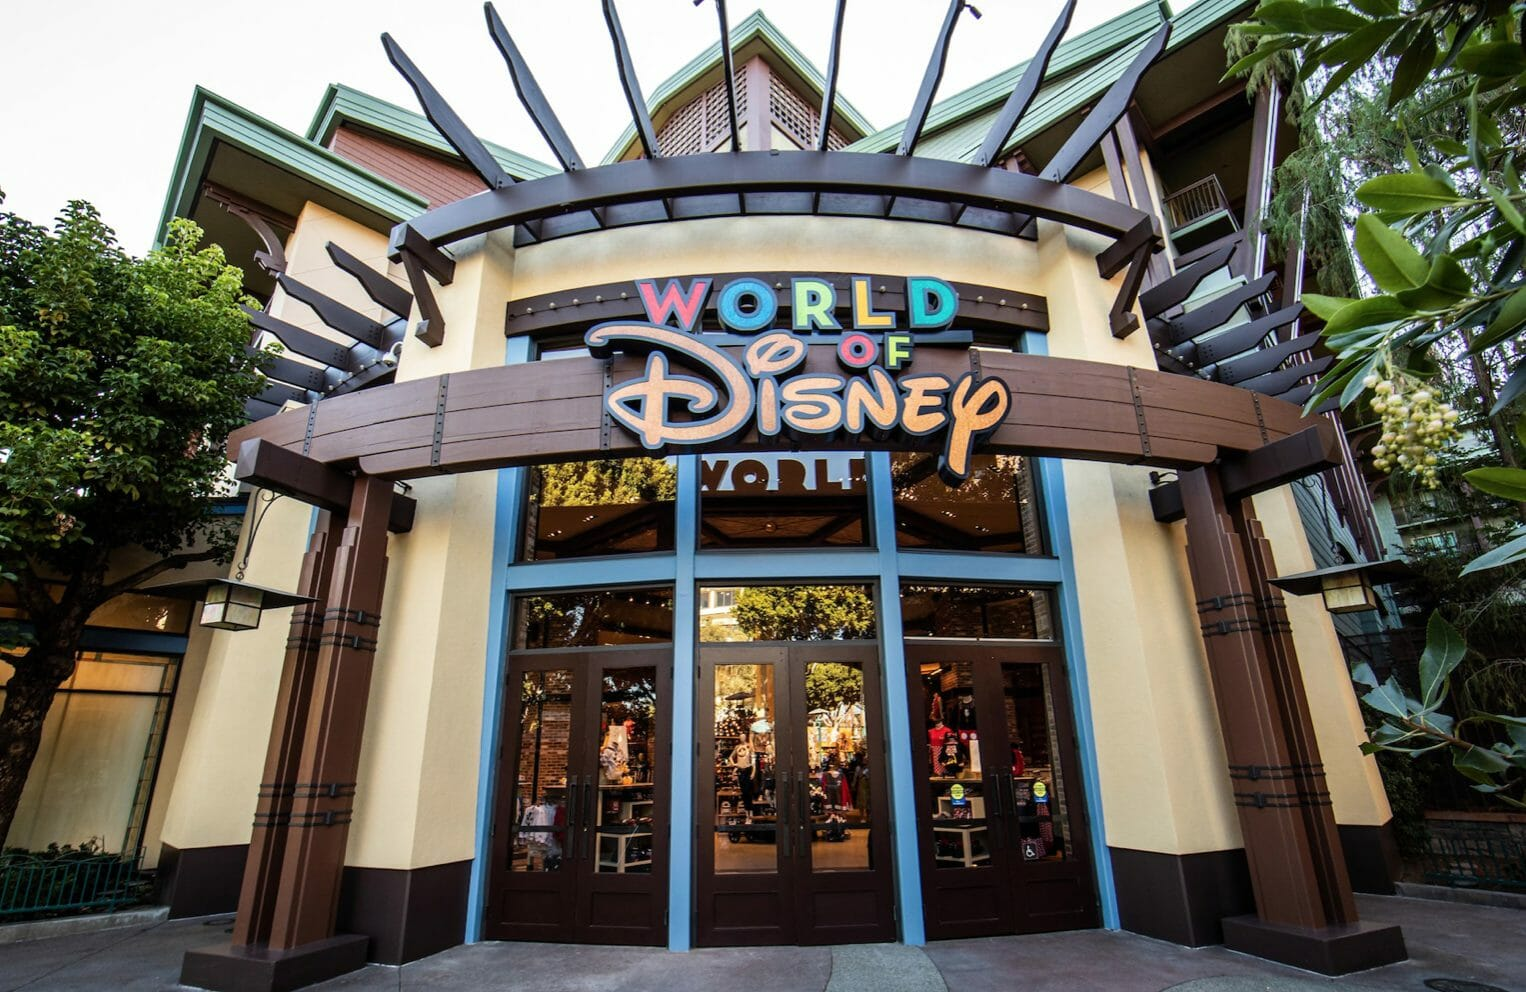 Downtown Disney District: Know Before You Go